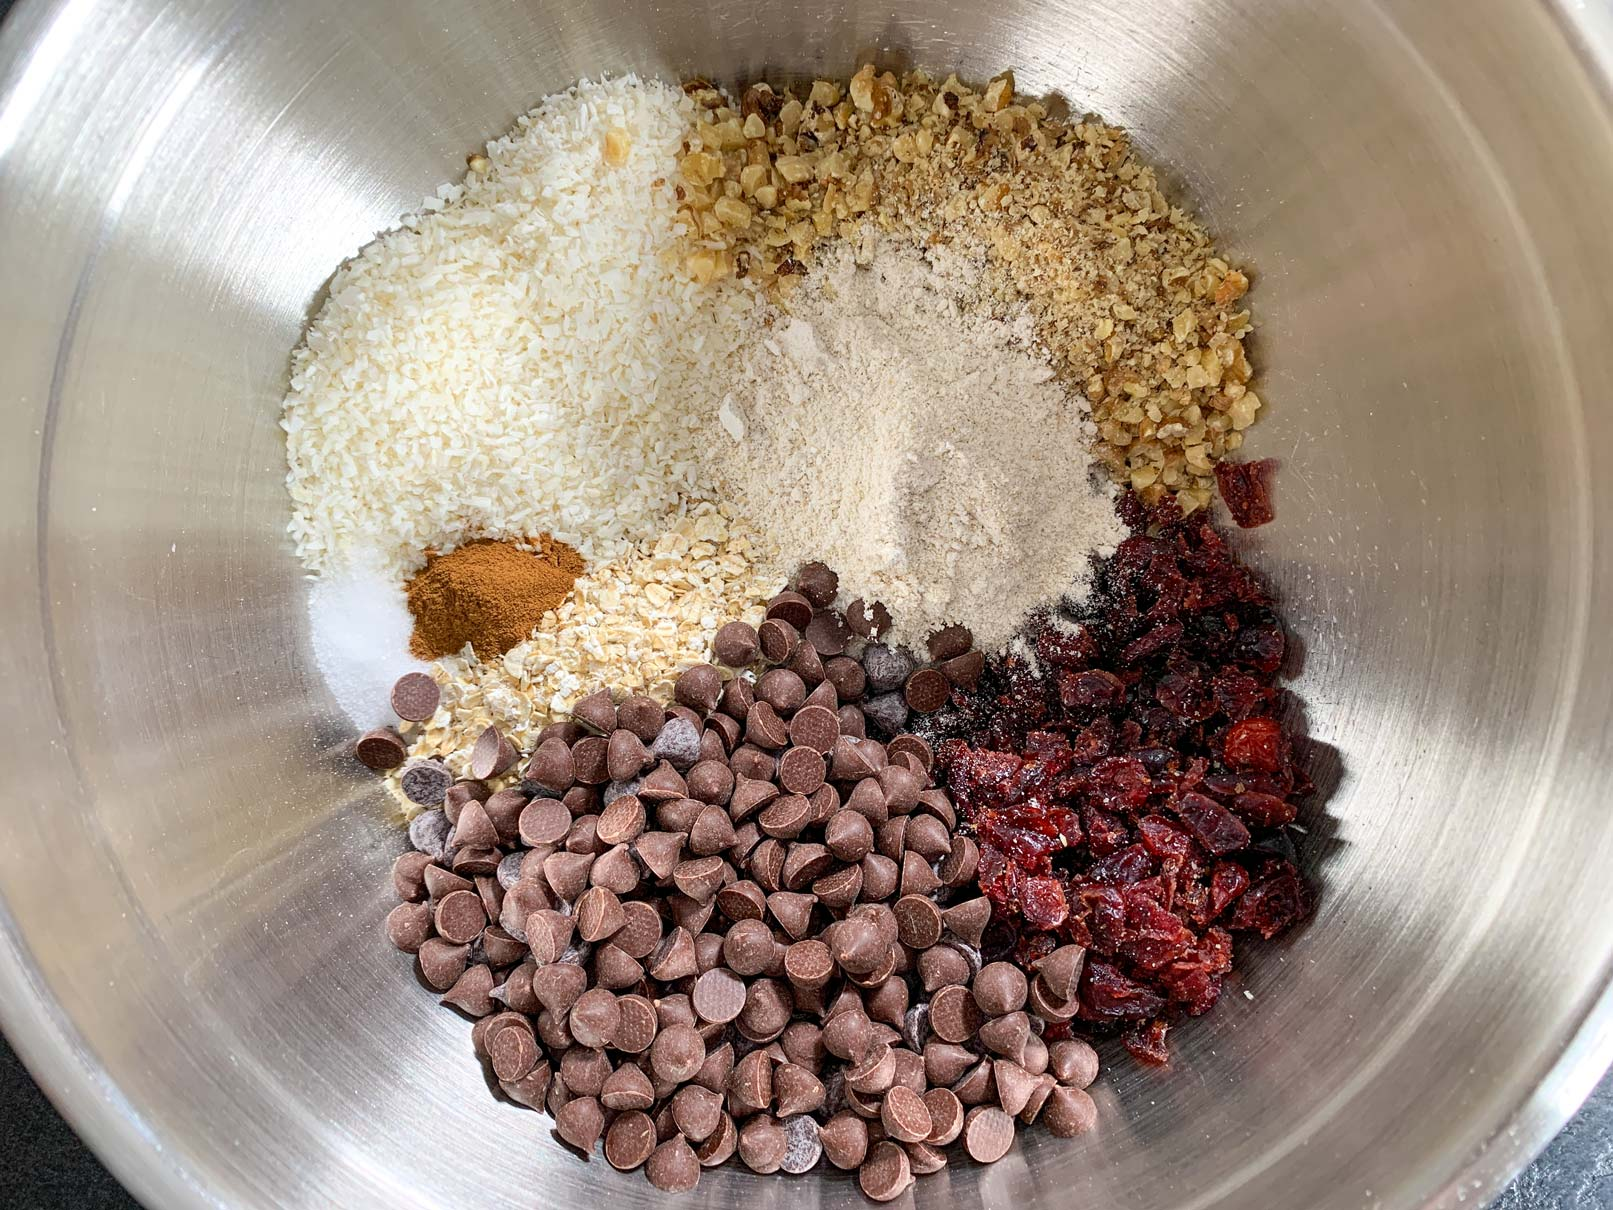 All the dry ingredients in a bowl